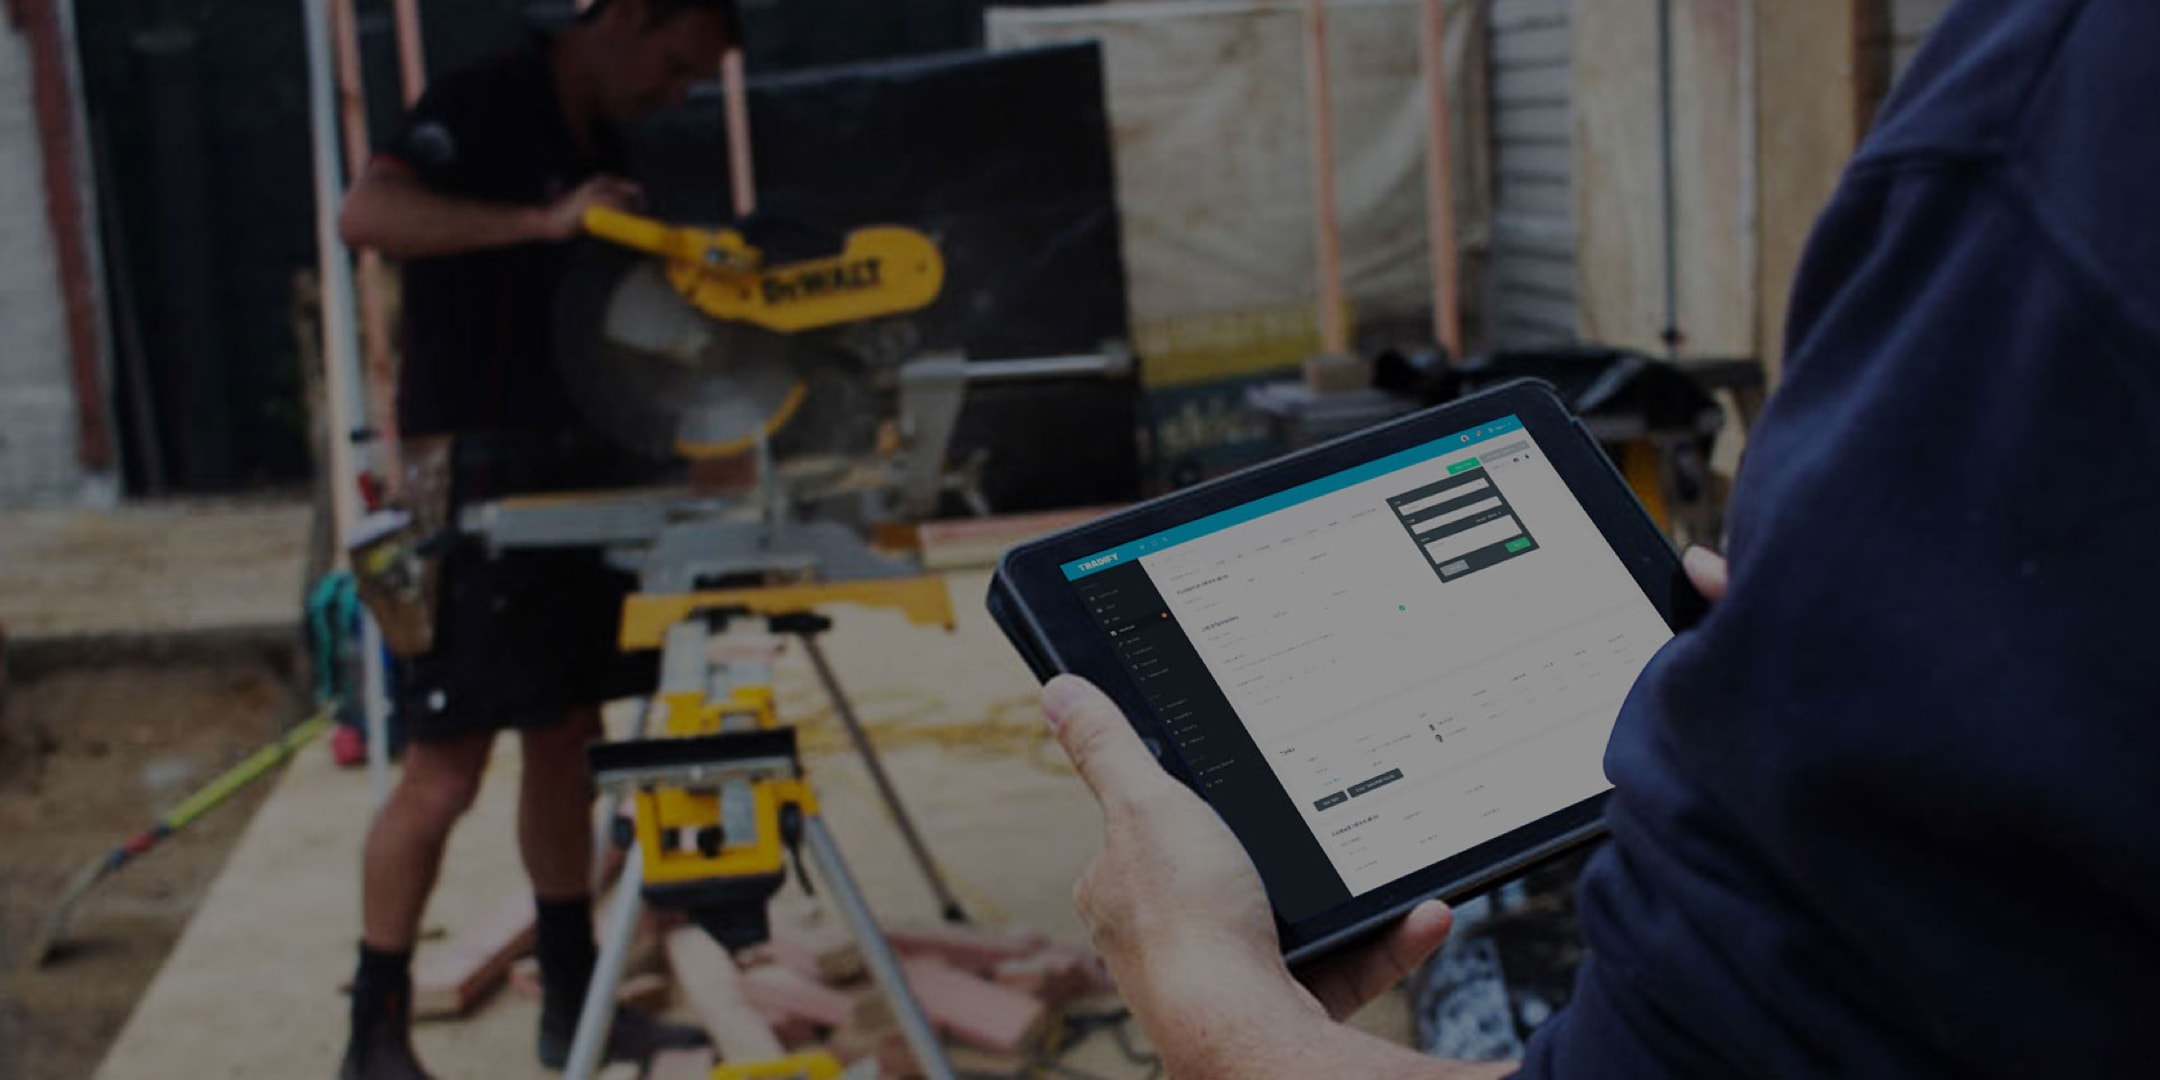 A tradesperson uses Tradify on a job site from an ipad